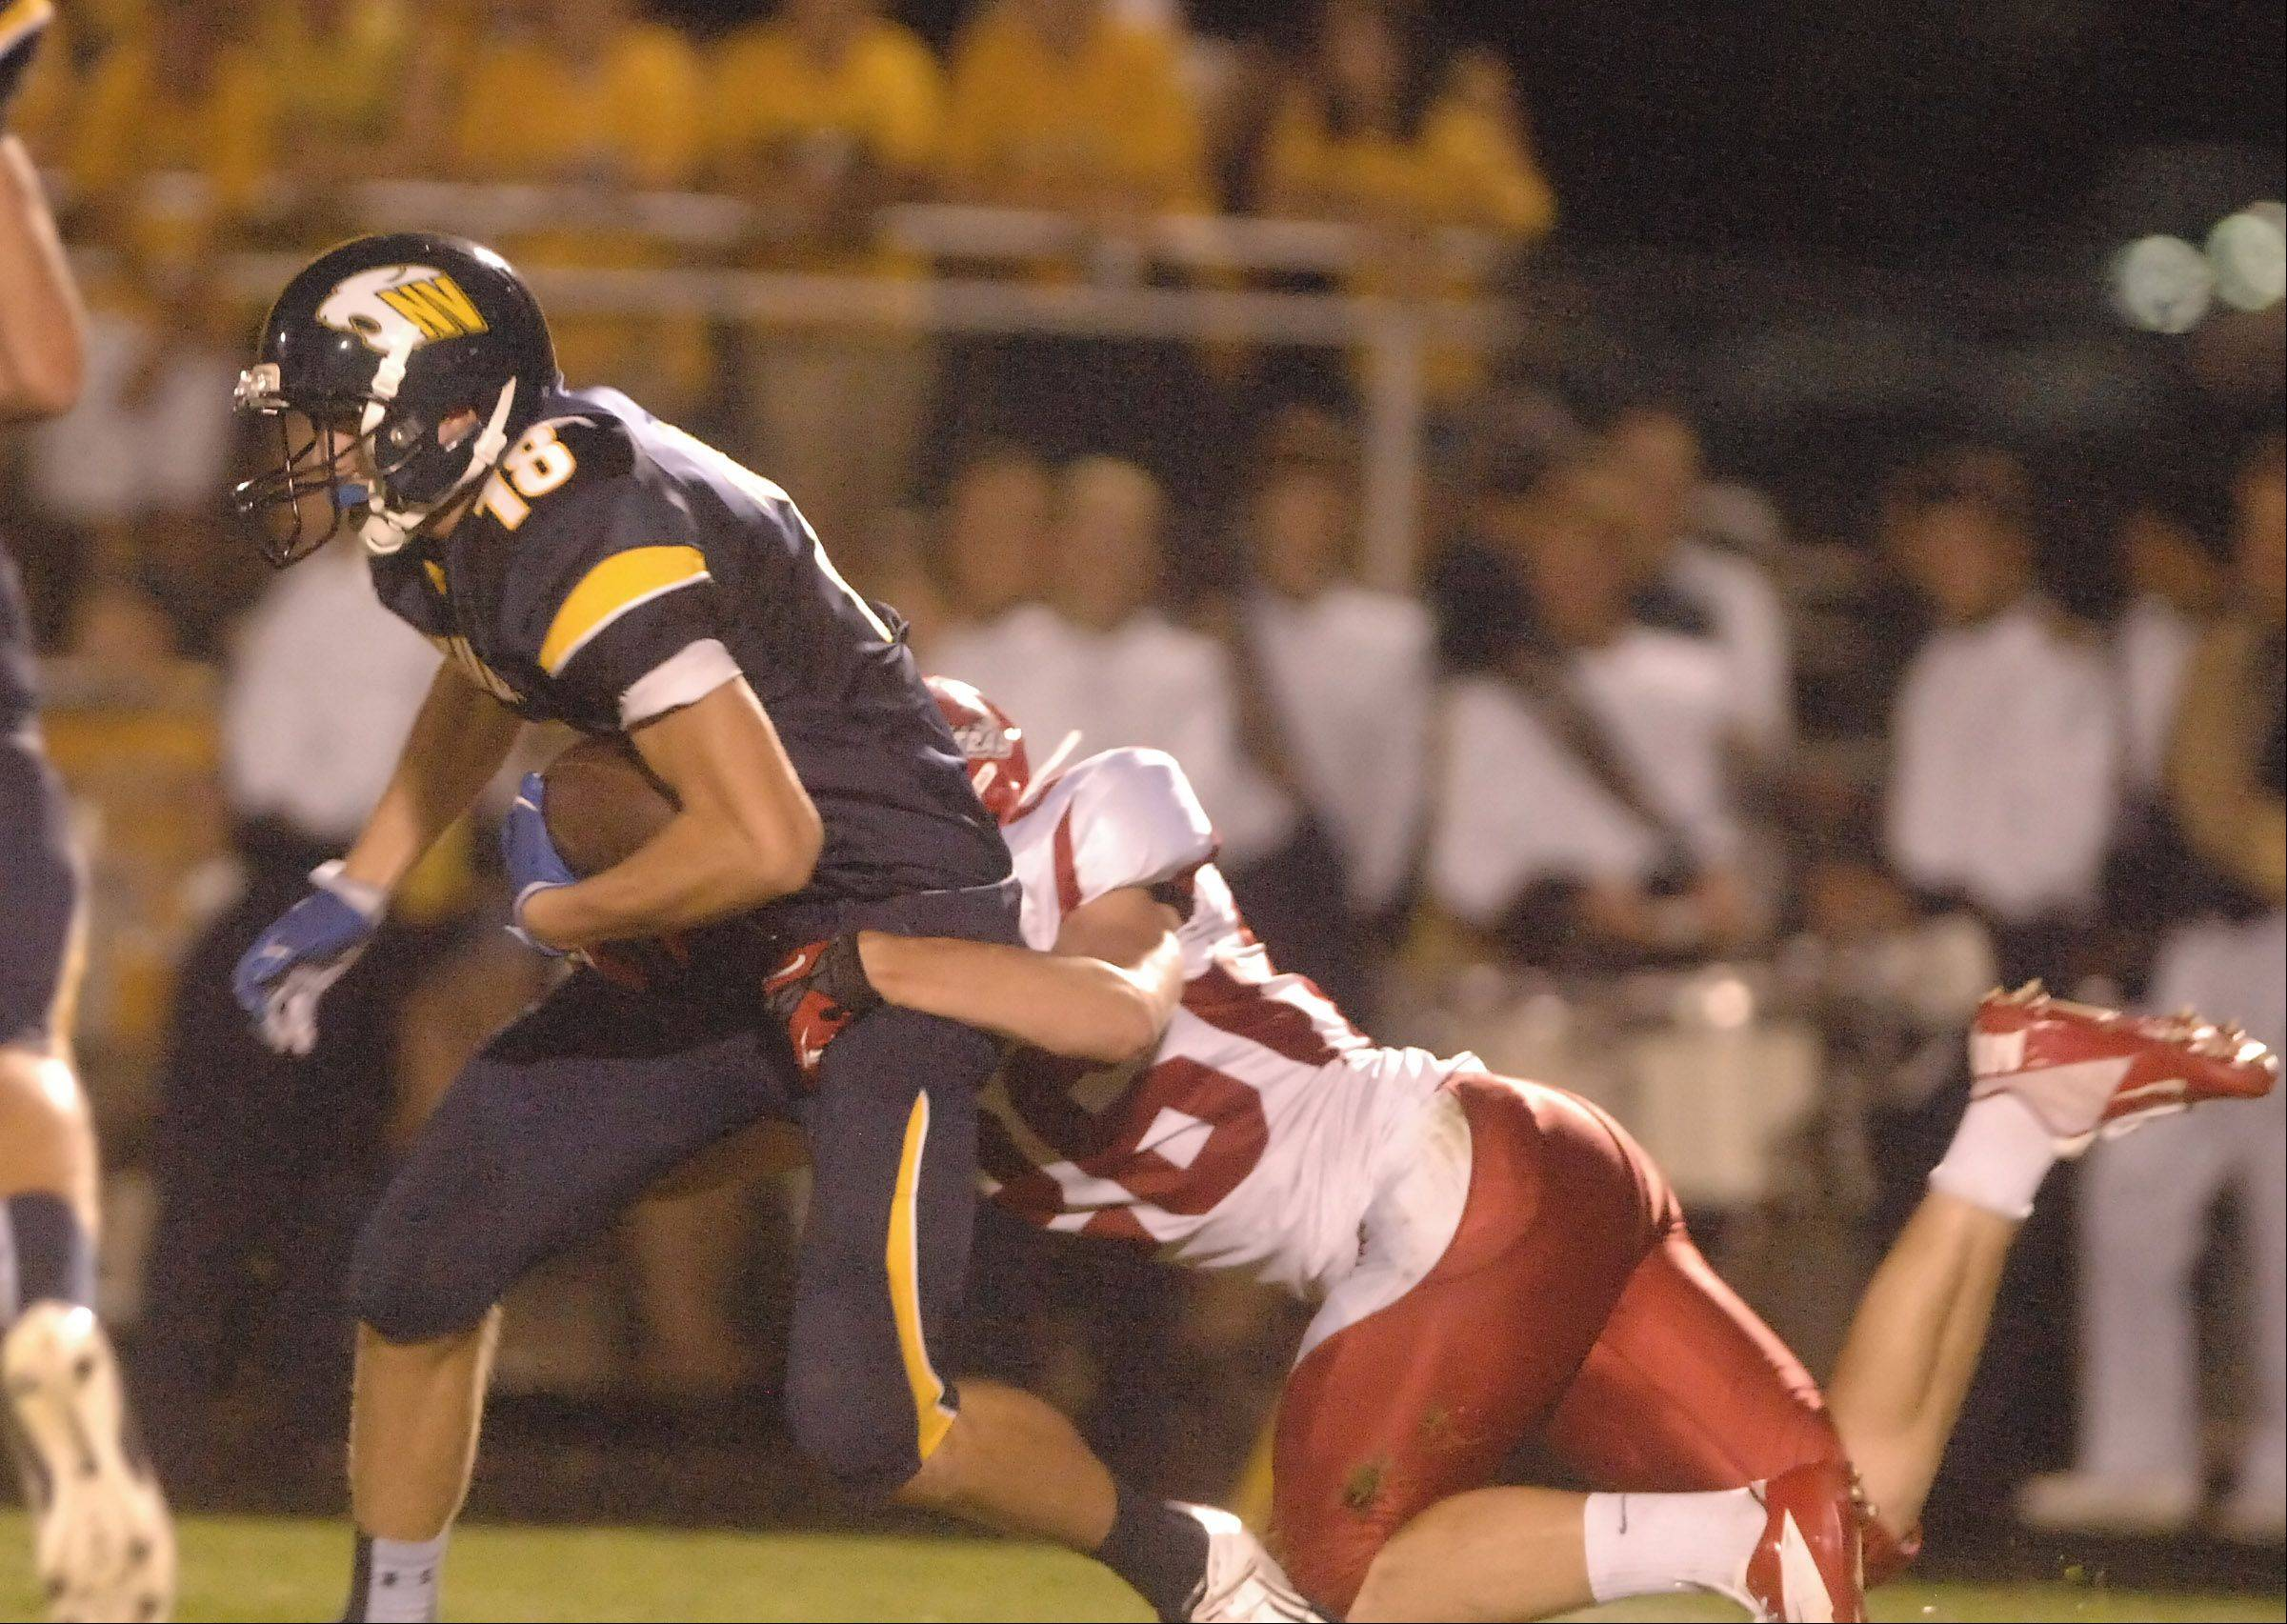 Paul Michna/pmichna@dailyherald.comRyan Kuhl of Neuqua is pulled down by Kevin Nowak of Naperville Central during the Naperville Central at Neuqua Valley football game Friday.